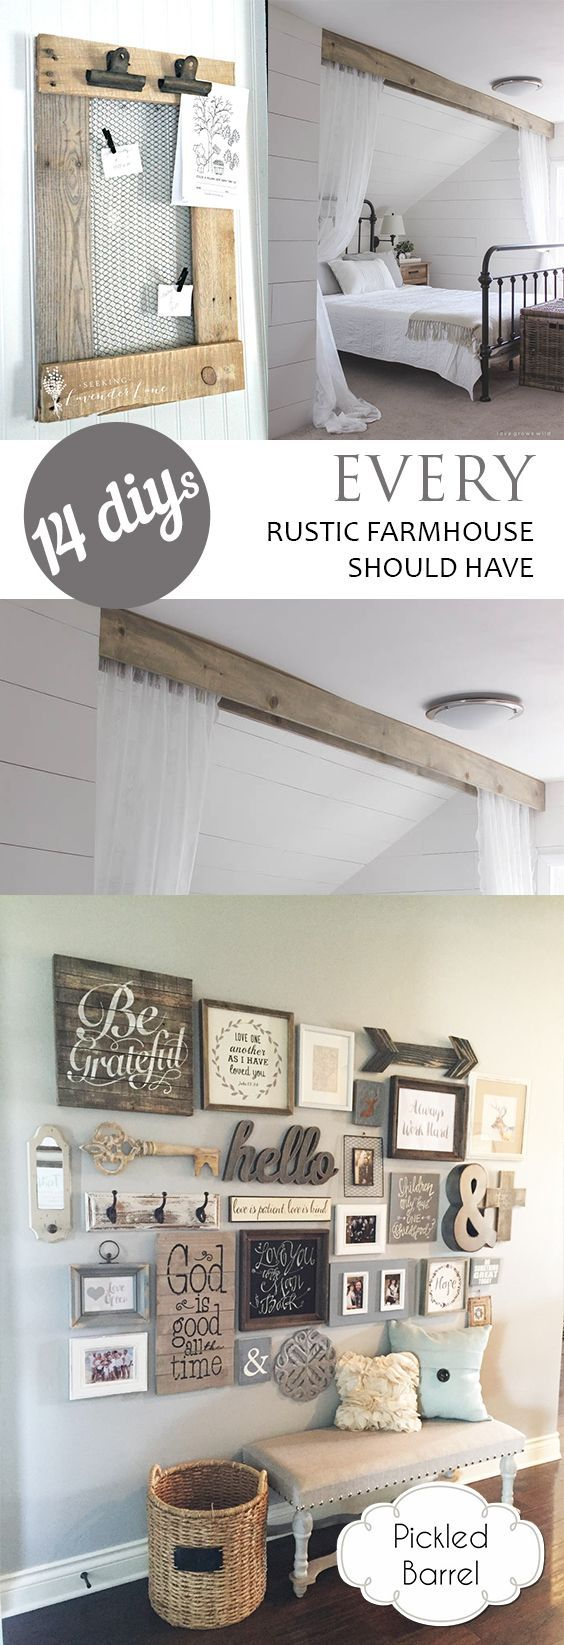 4948 best Home images on Pinterest | Home ideas, Country style and ...